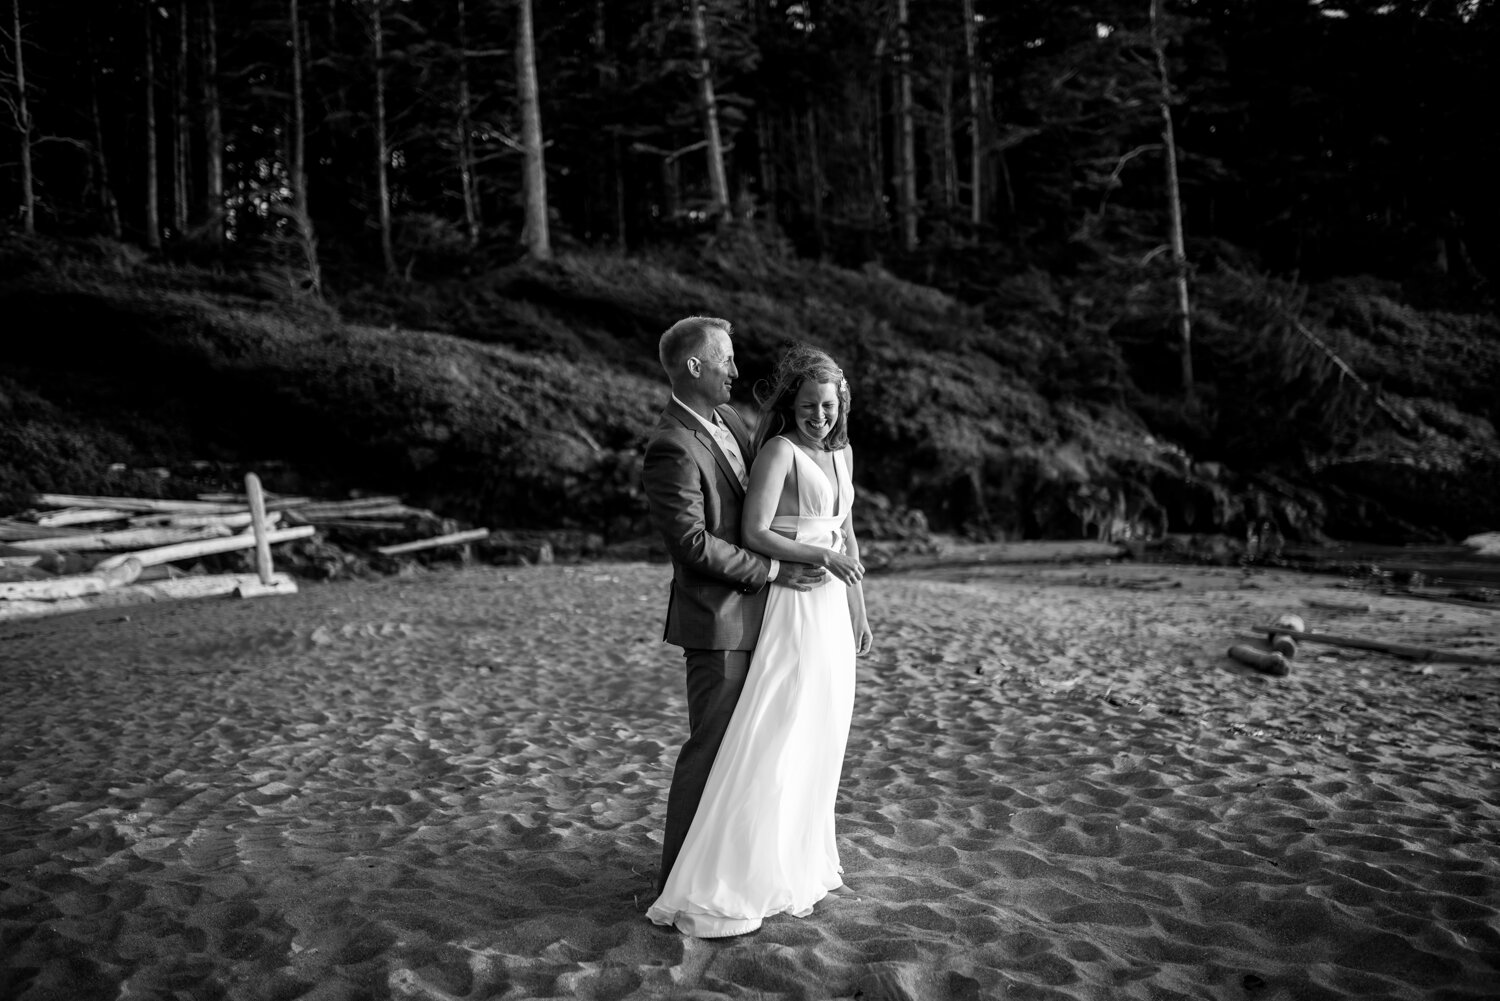 Ucluelet-Wya-Point-Wedding-Owen-Imaging-58.jpg